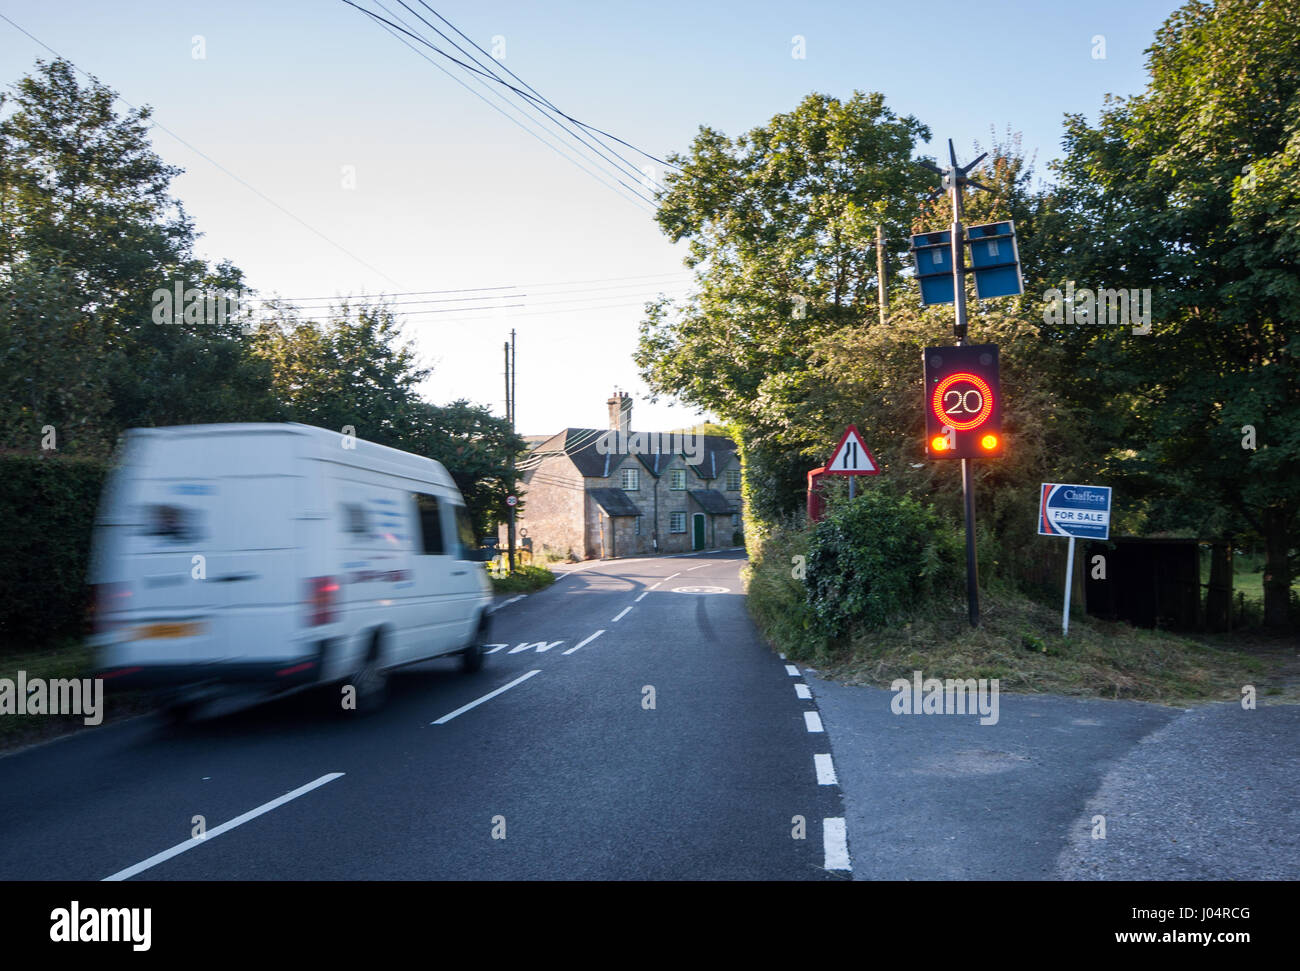 Shaftesbury, England, UK - July 28, 2012: Traffic rushes through Melbury Abbas village in rural north Dorset, activating - Stock Image